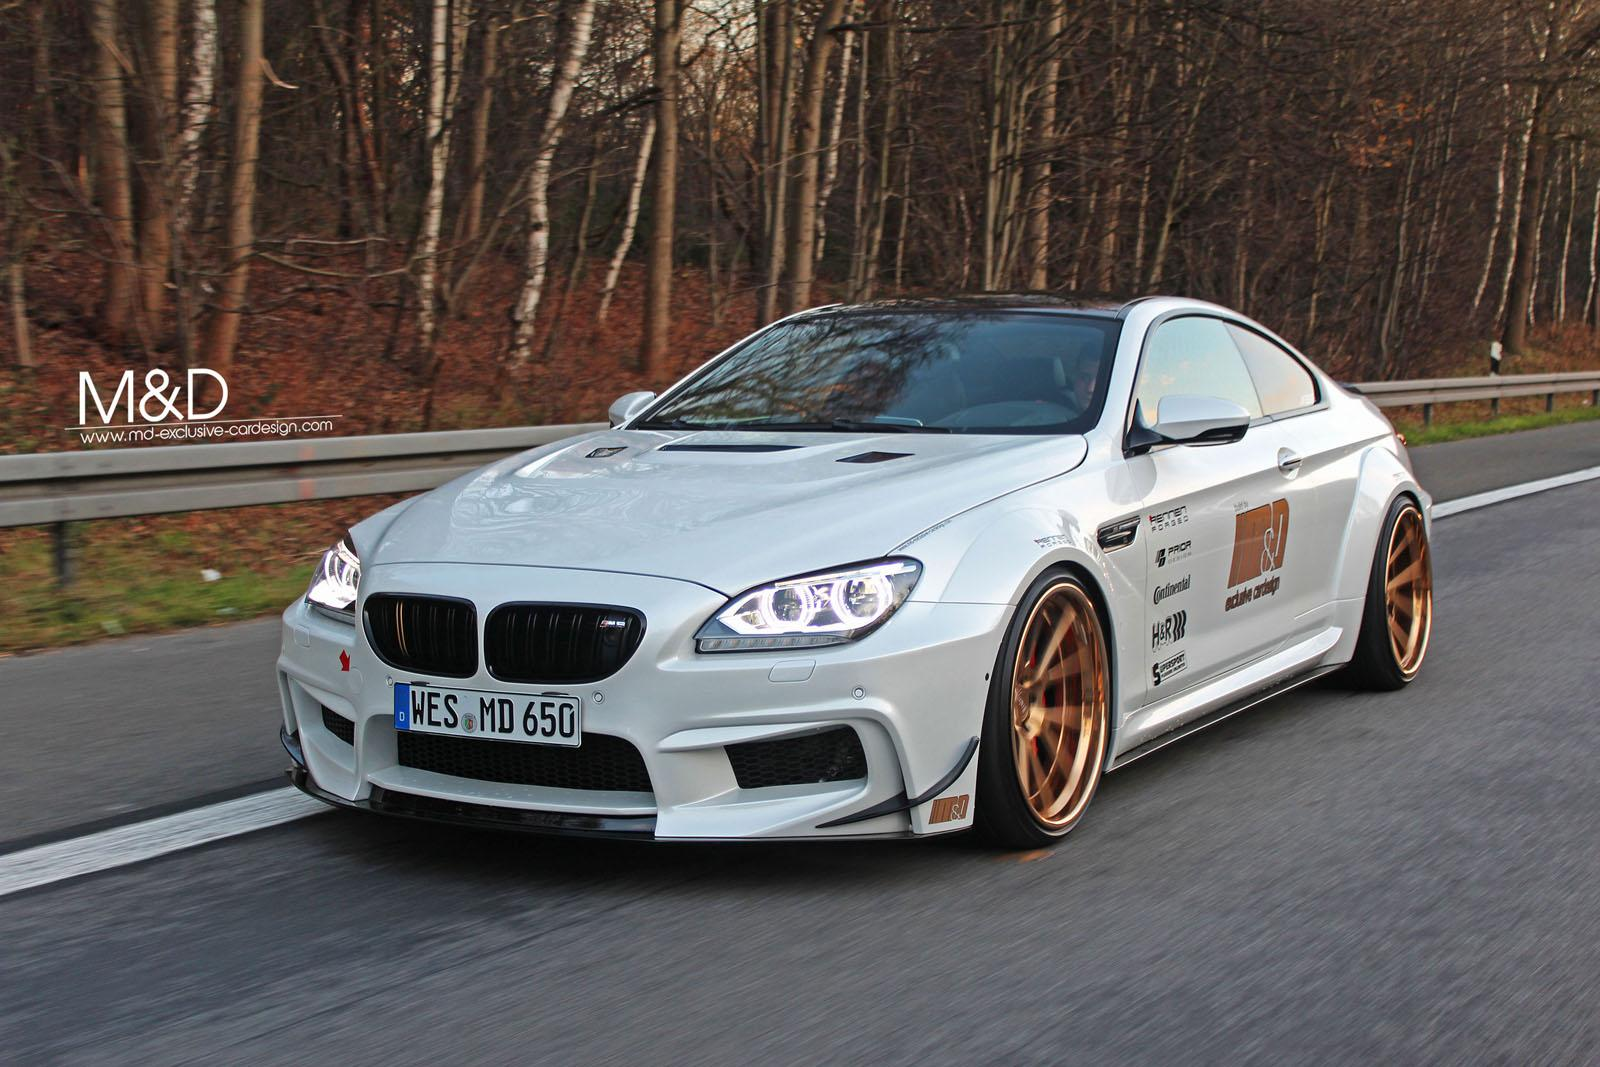 Bmw Car M D Tuning Takes 650i Coupe To 510 Hp A Mini M6 Photo Gallery